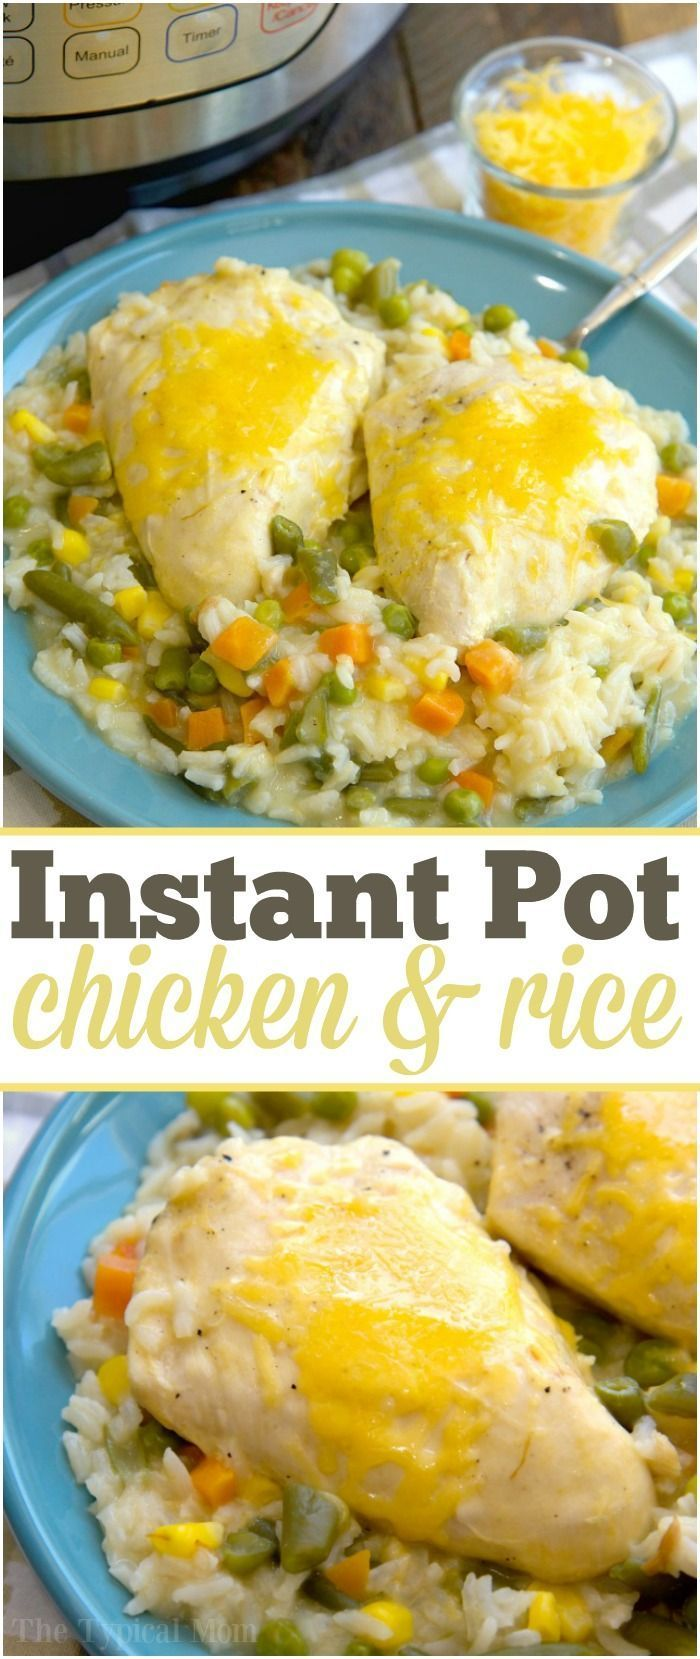 Amazingly easy pressure cooker chicken and rice casserole recipe we make in our Instant Pot. Just 16 minutes cooks chicken, rice and vegetables perfectly. via @thetypicalmom